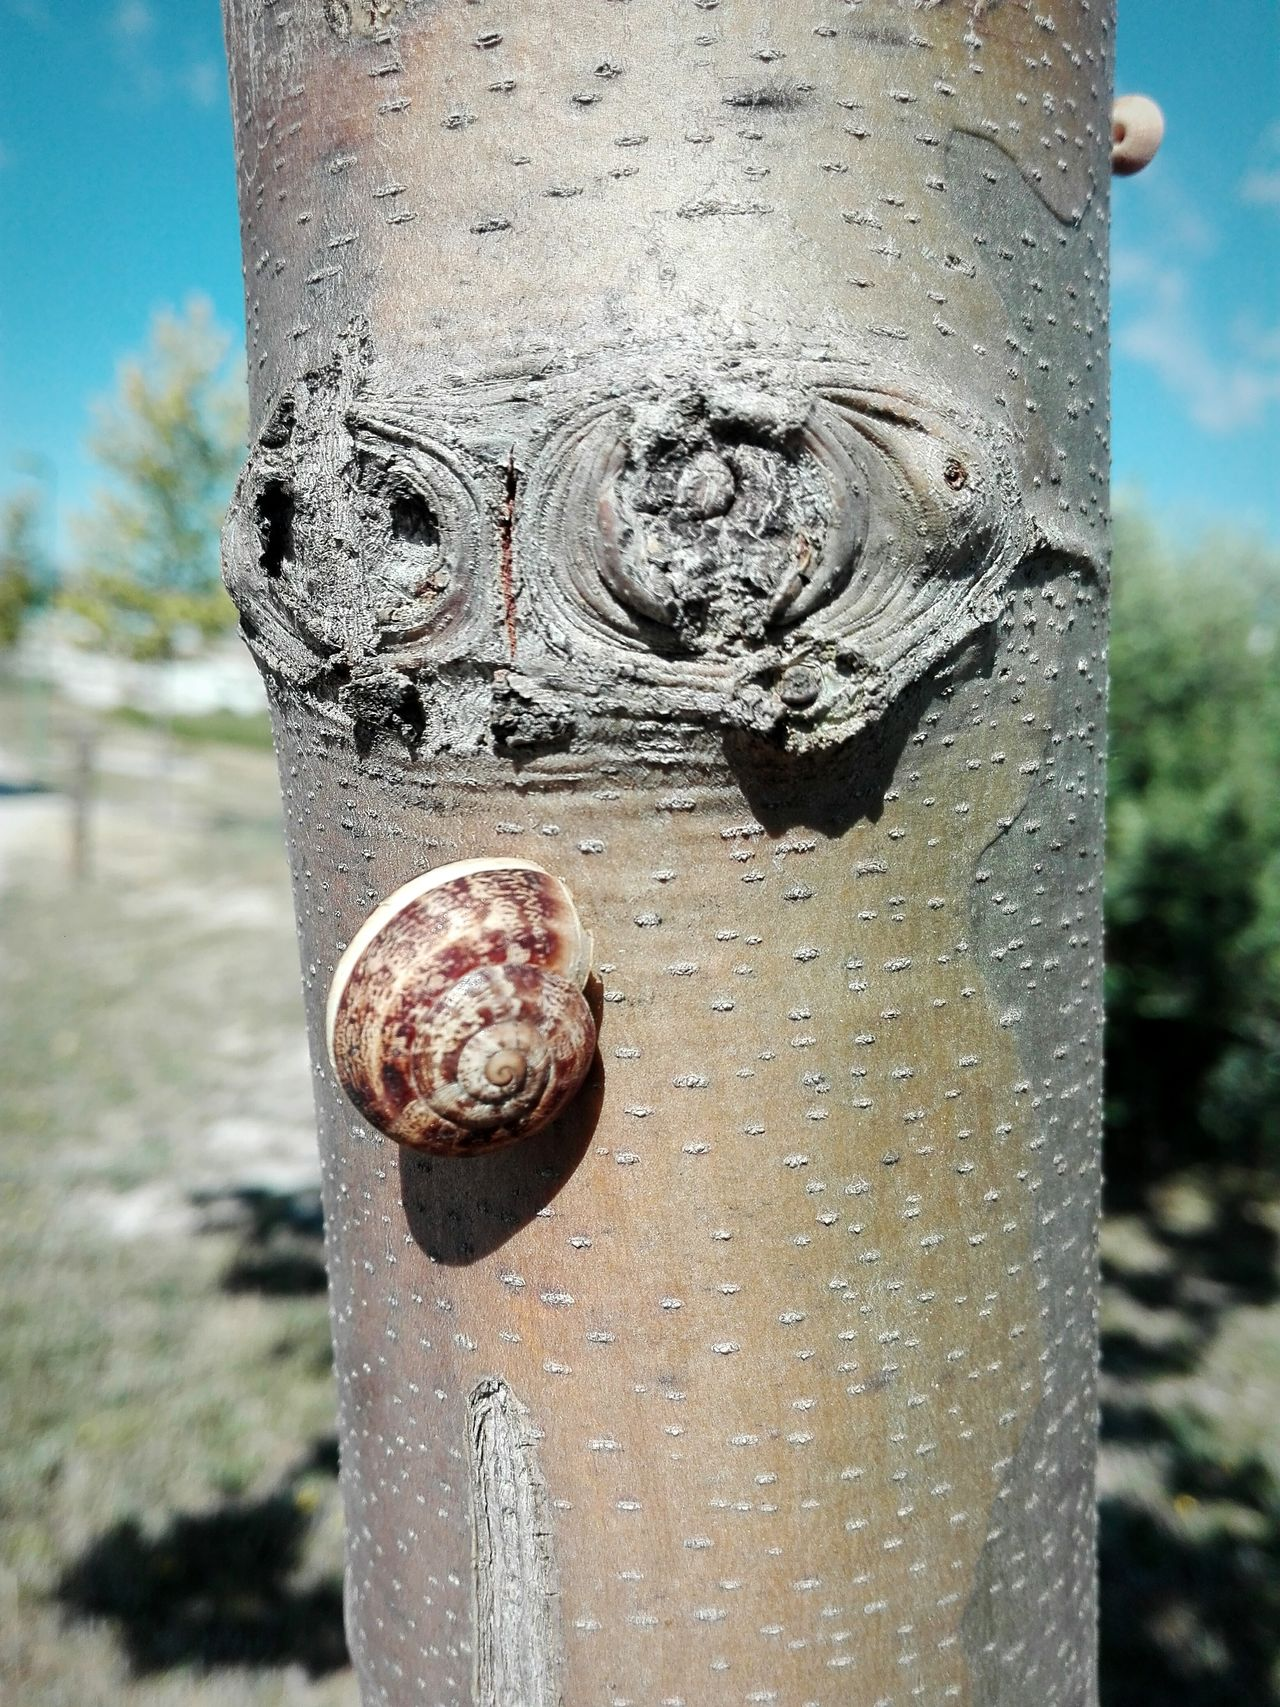 Tronco Caracol Arbre árbol Animals In The Wild Snail🐌 Snail Tree